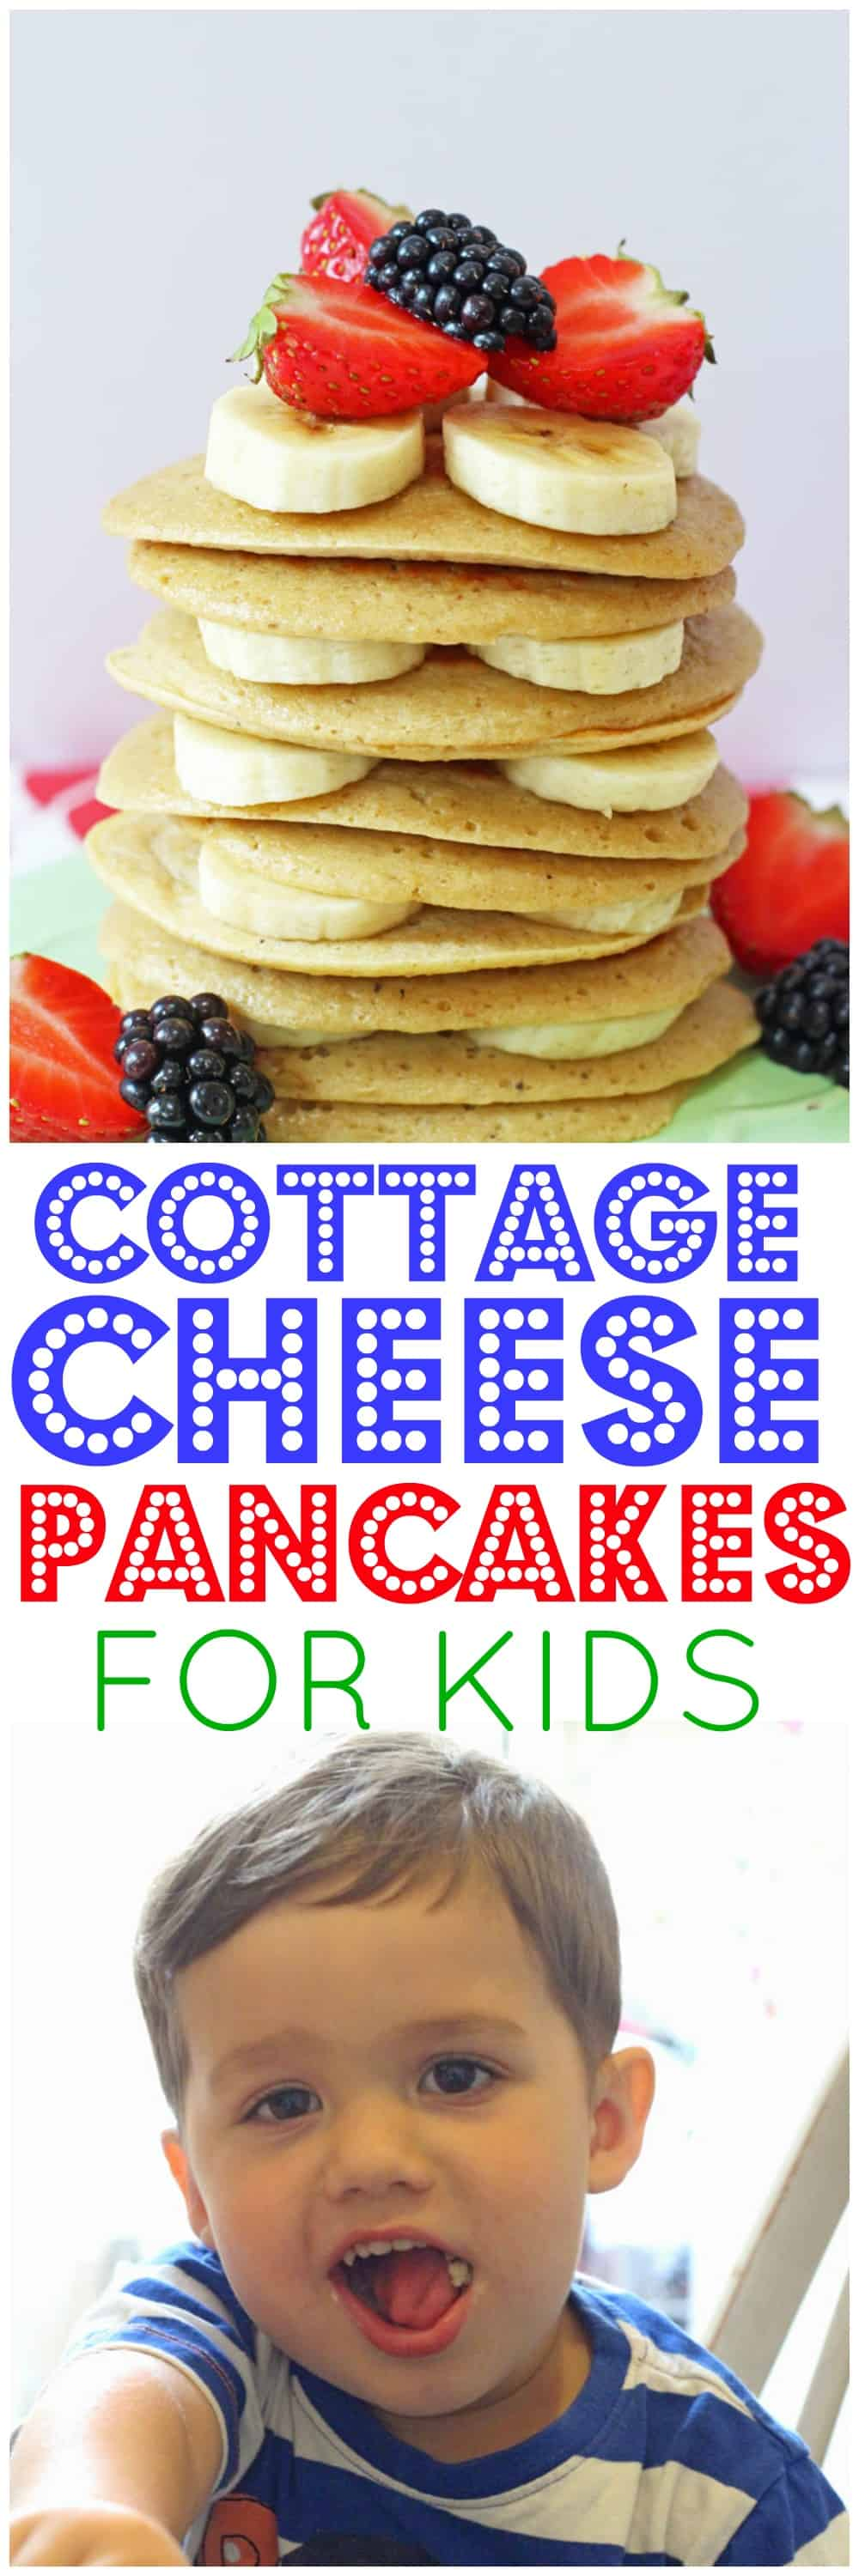 Cottage Cheese Pancakes - My Fussy Eater | Easy Kids Recipes Cottage Cheese Pancakes - My Fussy Eat